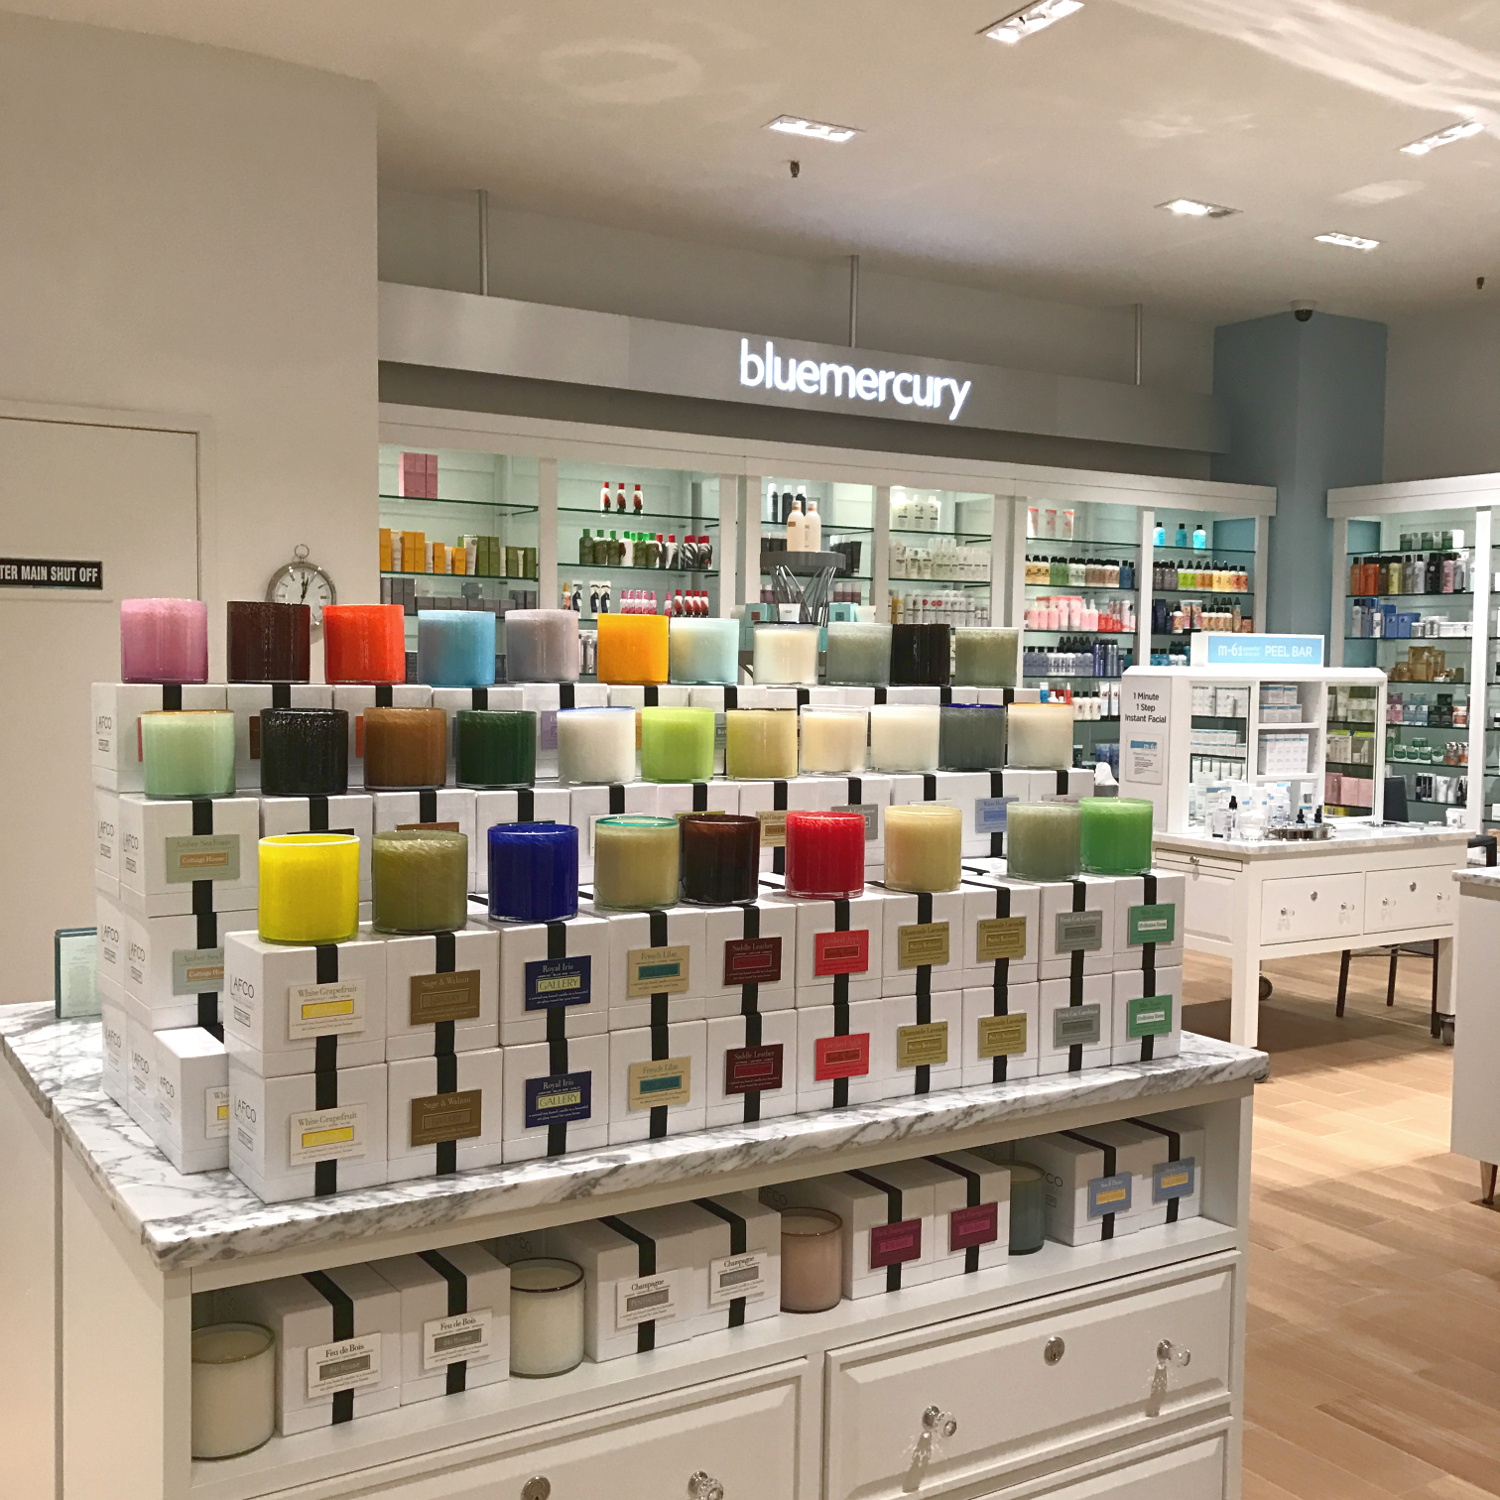 Bluemercury Spa at Macy's Palo Alto